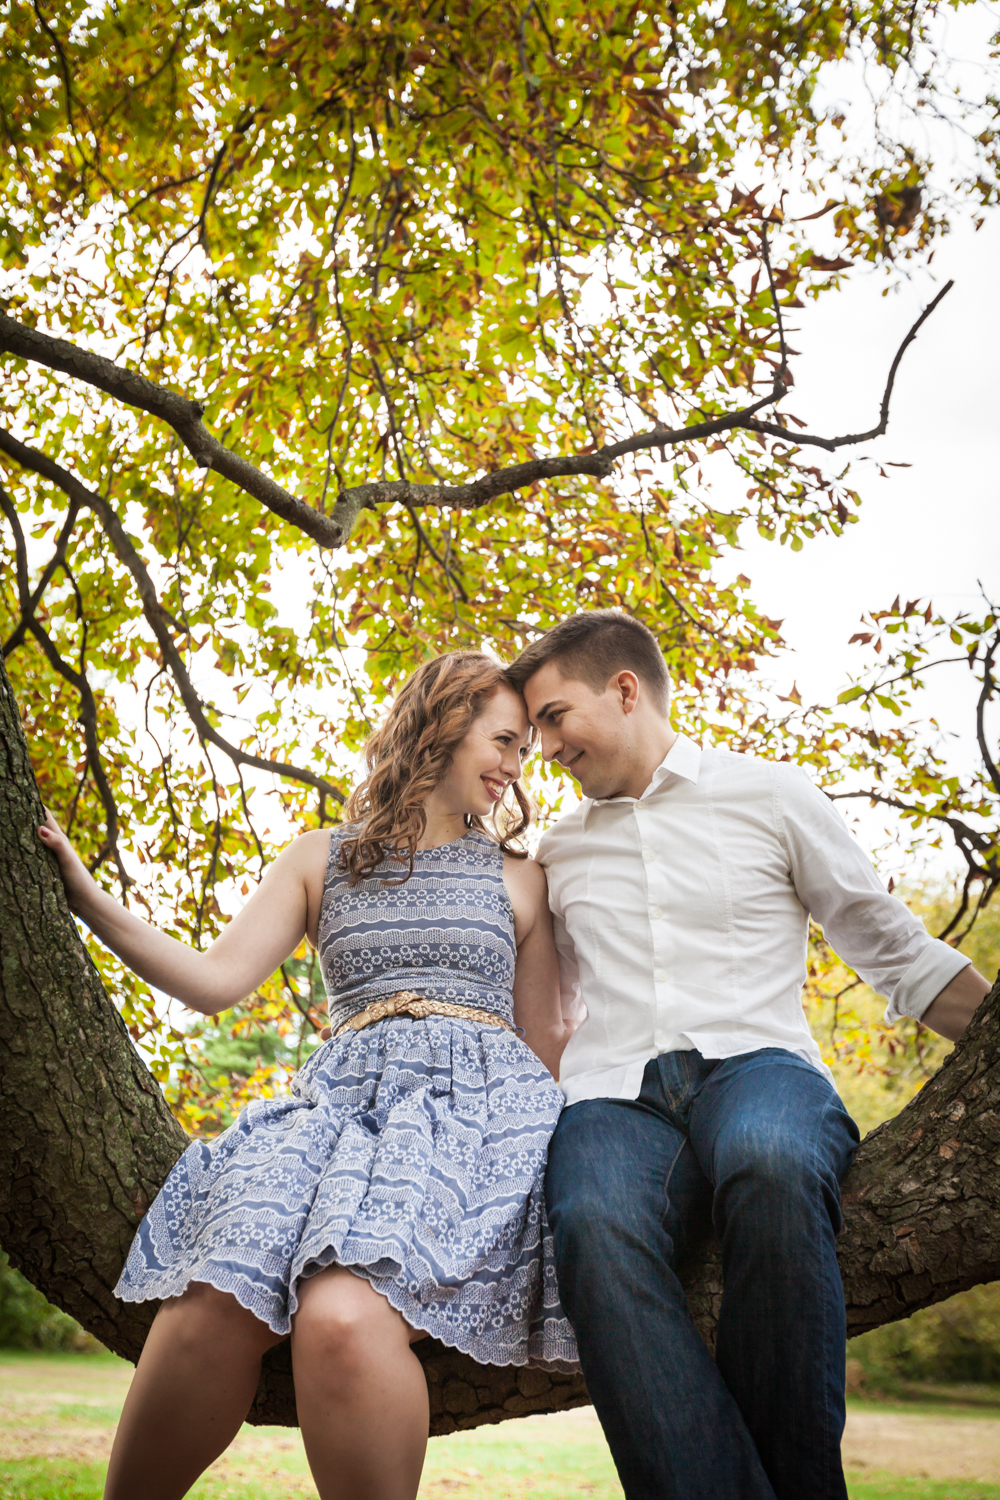 Couple sitting on tree branch touching foreheads